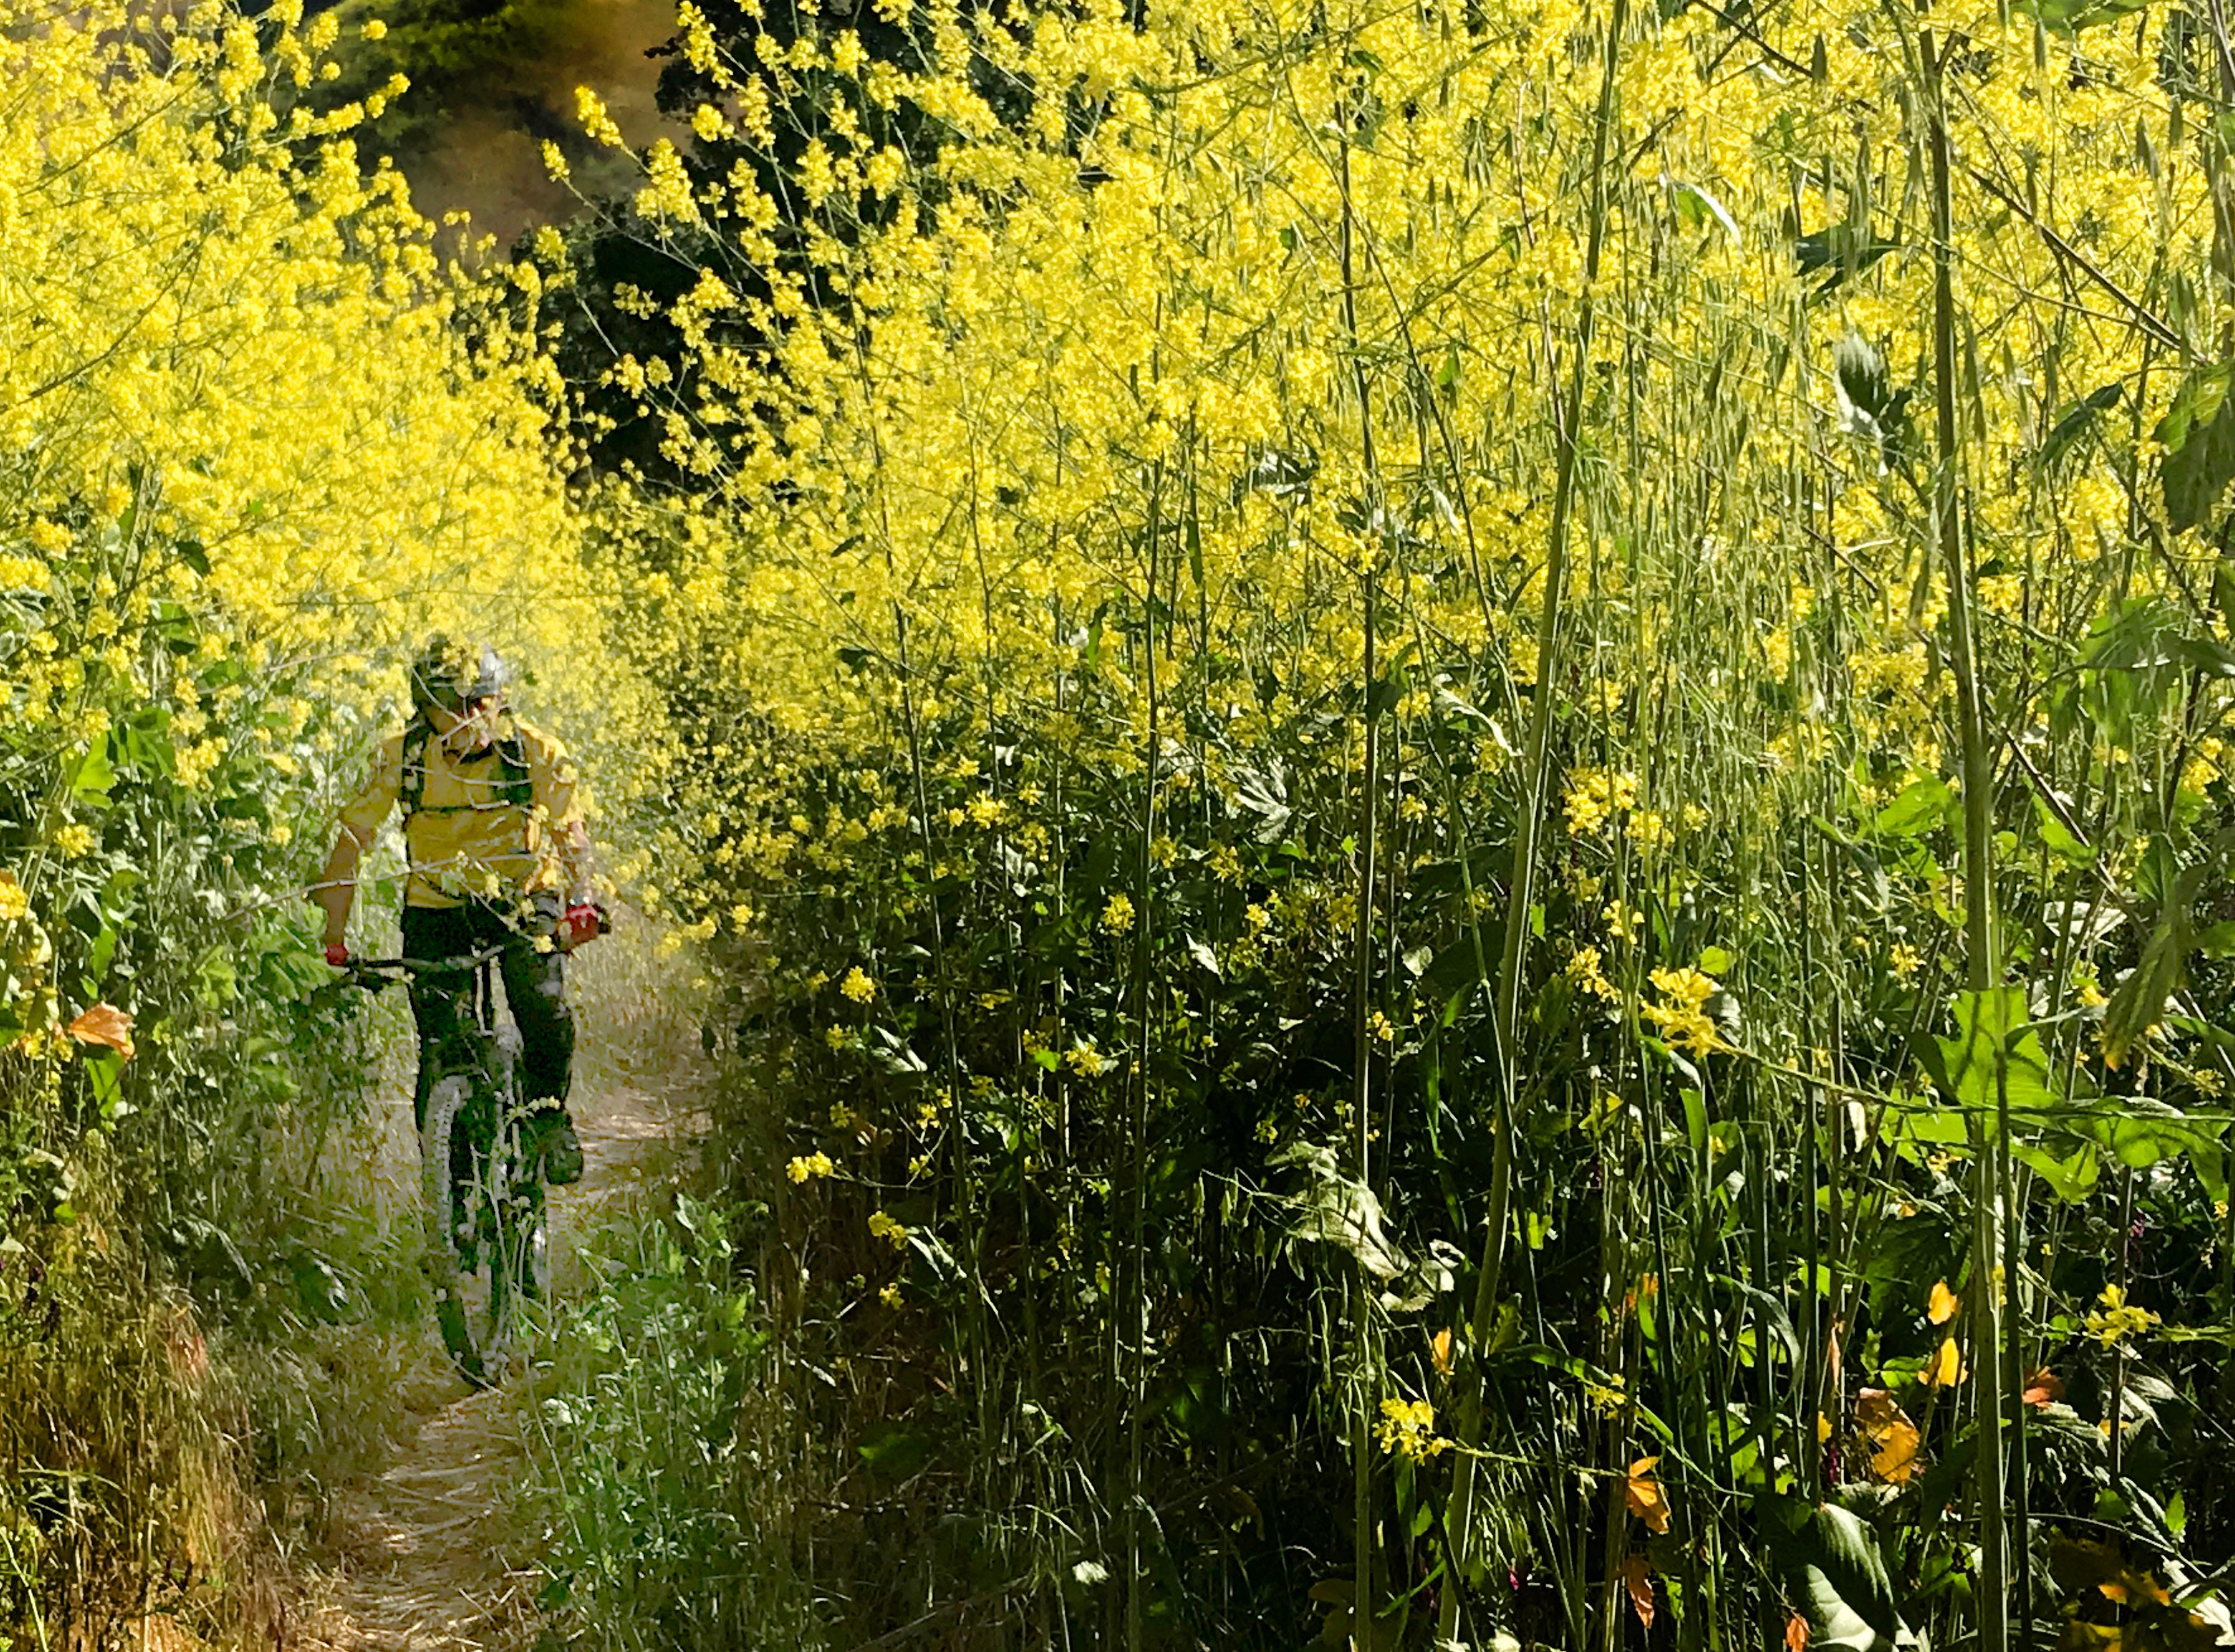 Steve Bonifede makes his way through the 8-foot mustard plants along Upper Las Virgenes Trail, where vegetation has flourished after a wet winter.